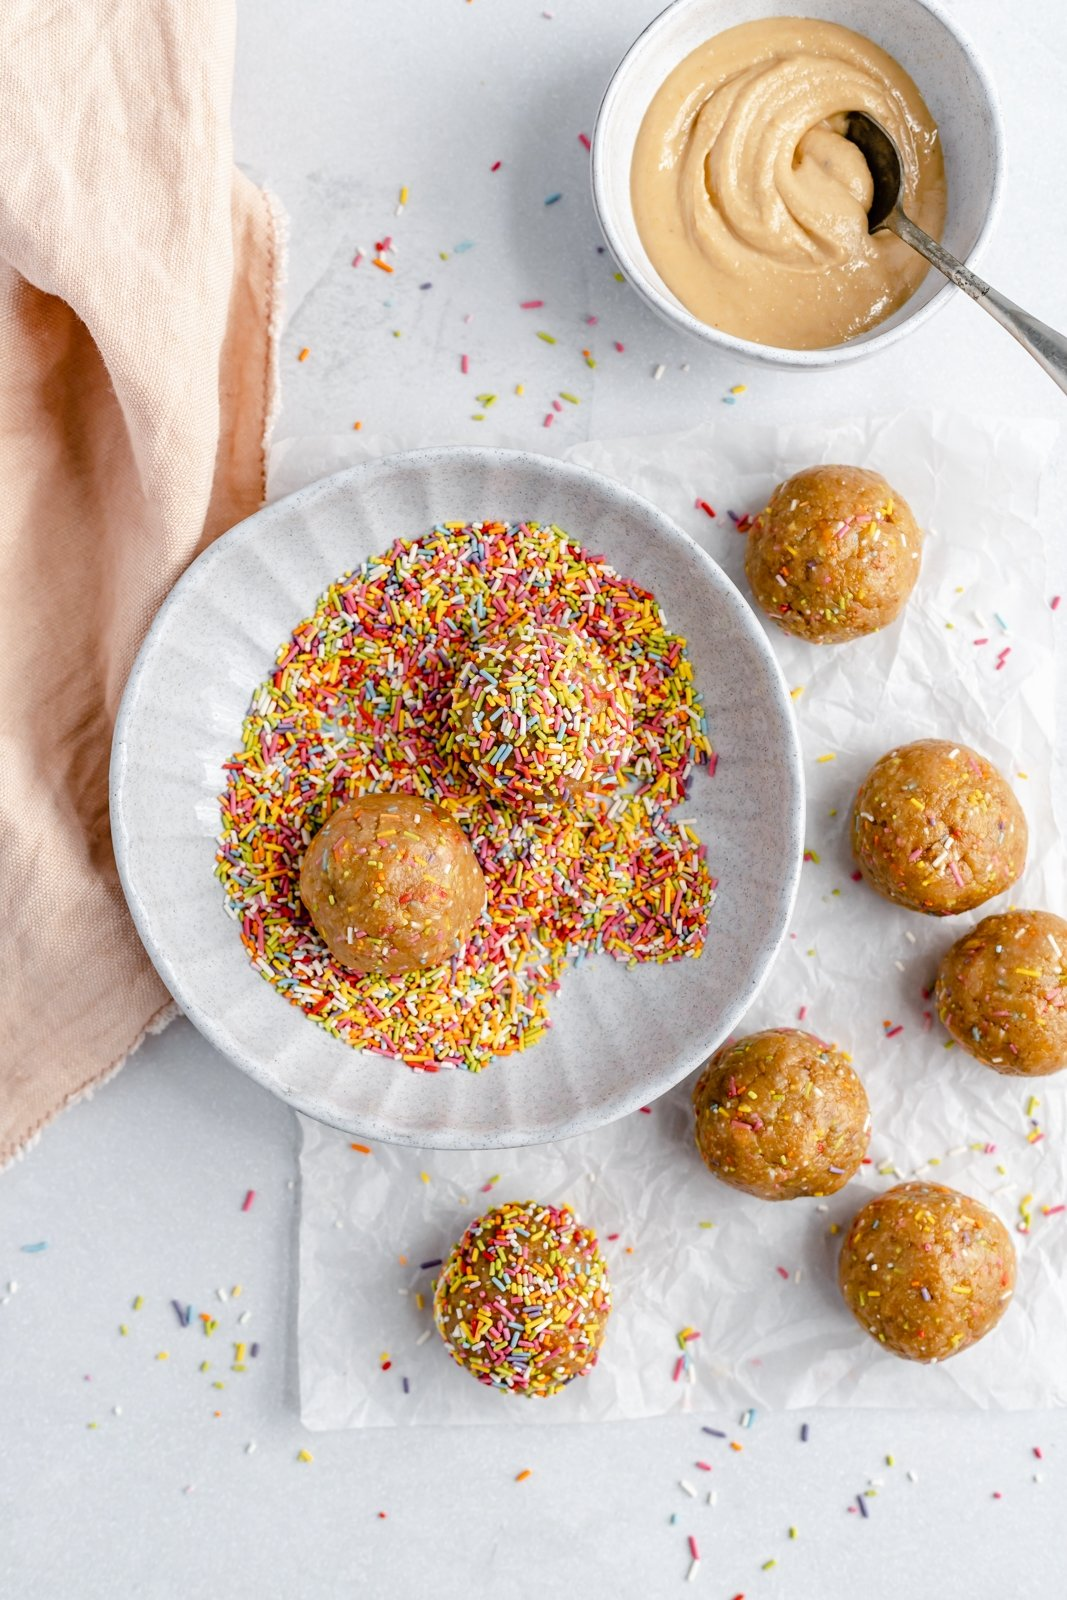 rolling healthy cake batter energy balls in a bowl of sprinkles